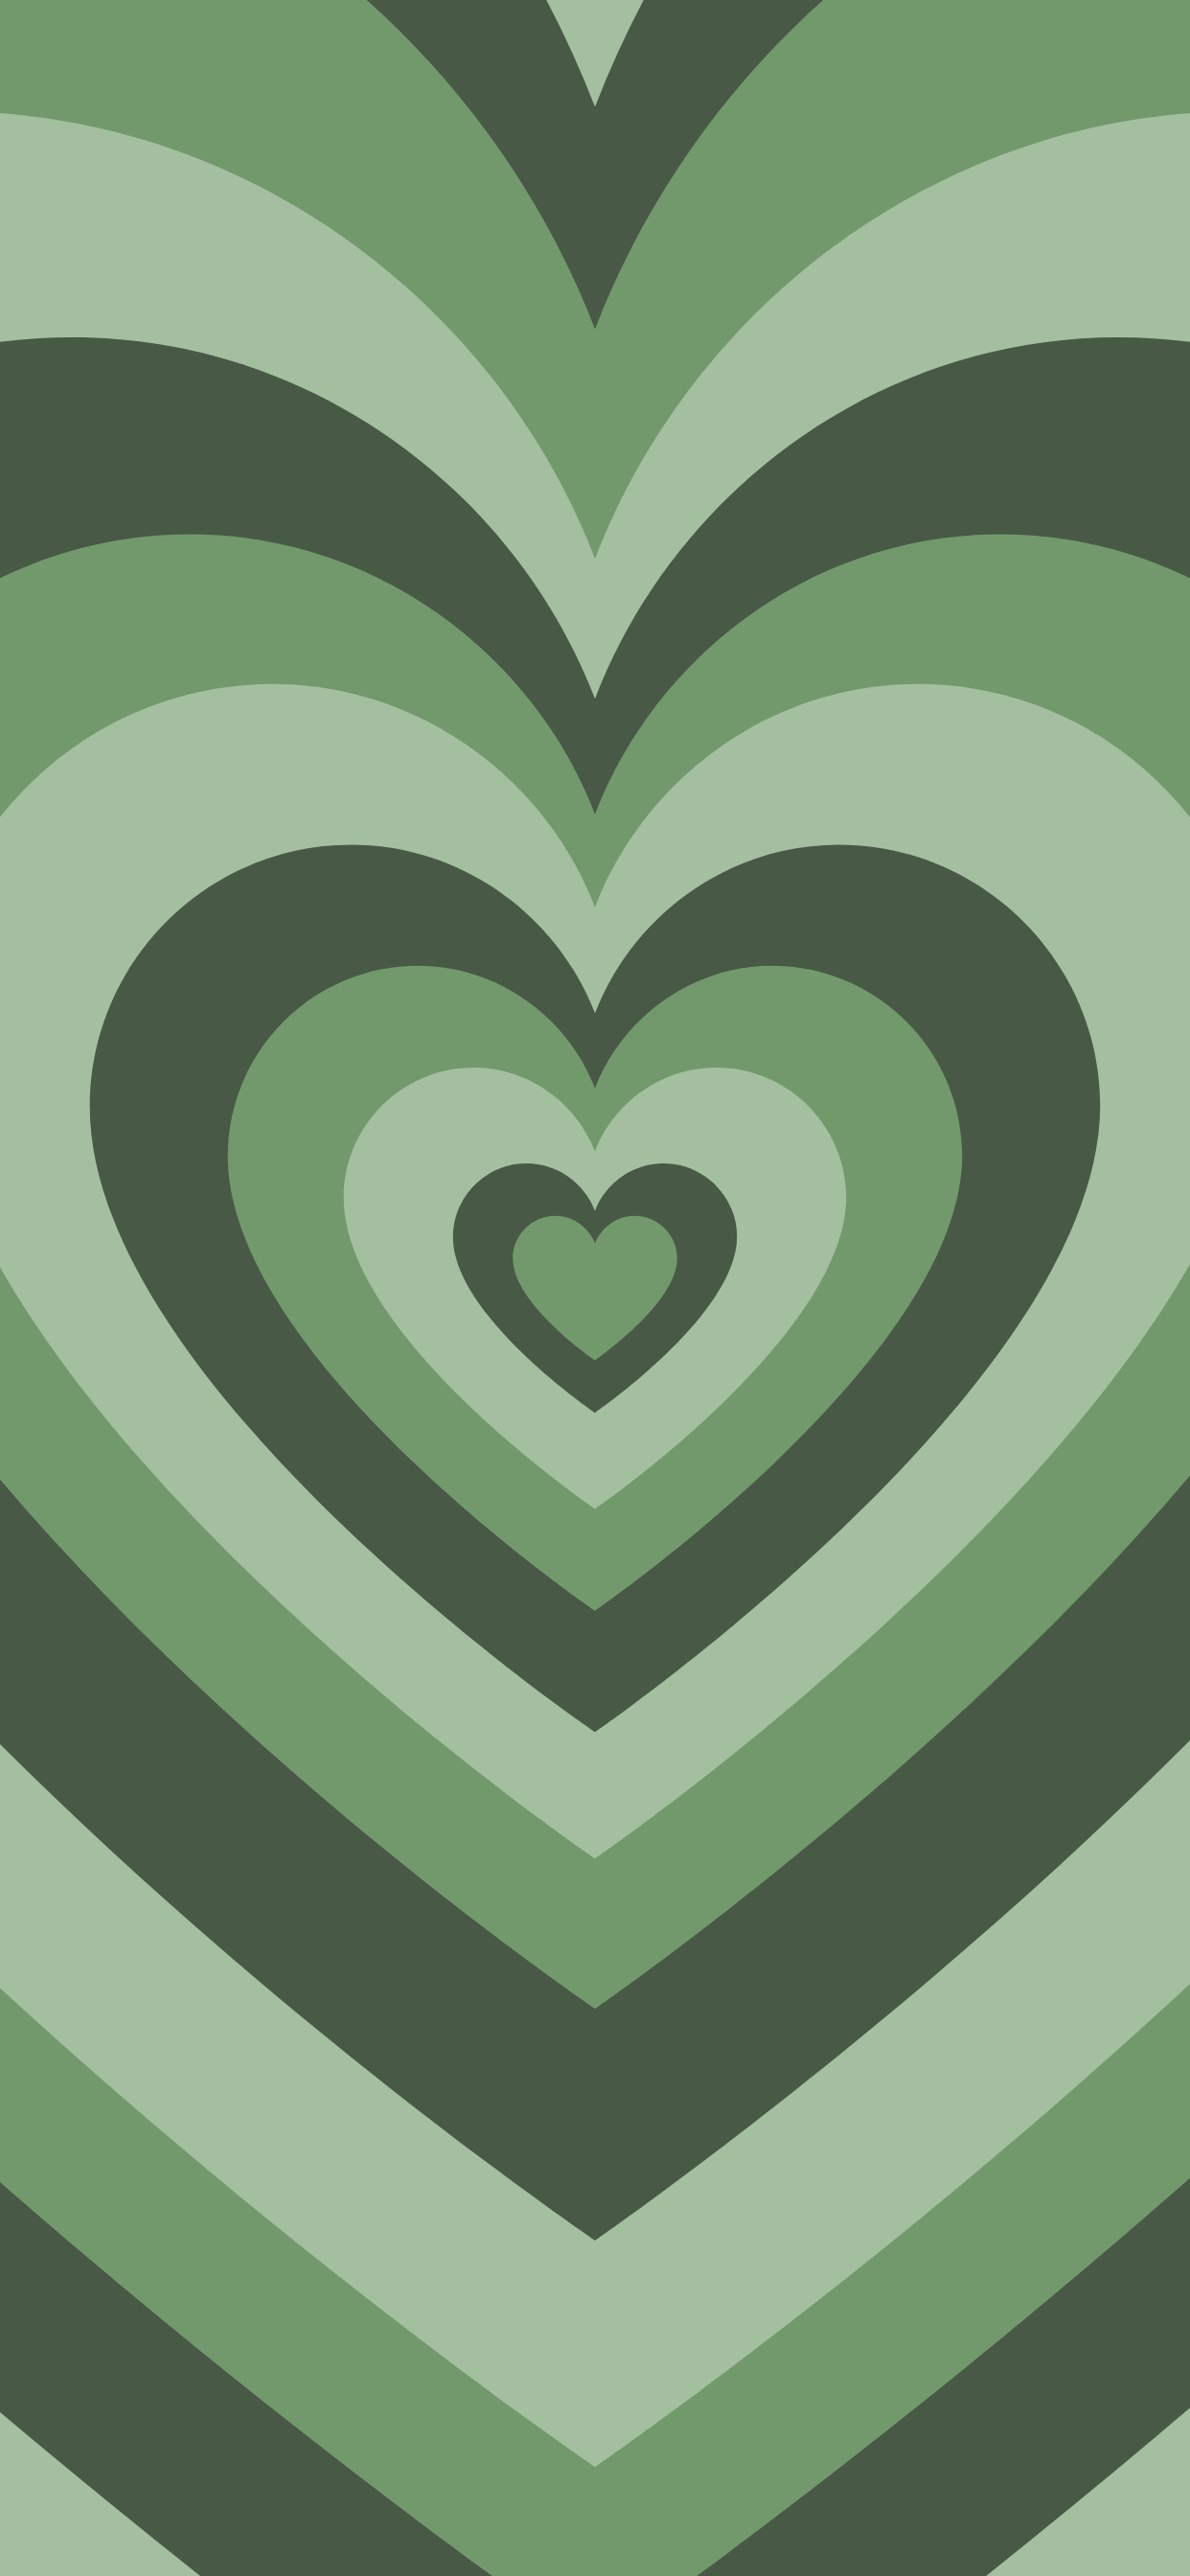 Sage Green Hearts 3 In 2021 Phone Wallpaper Patterns Cute Patterns Wallpaper Edgy Wallpaper